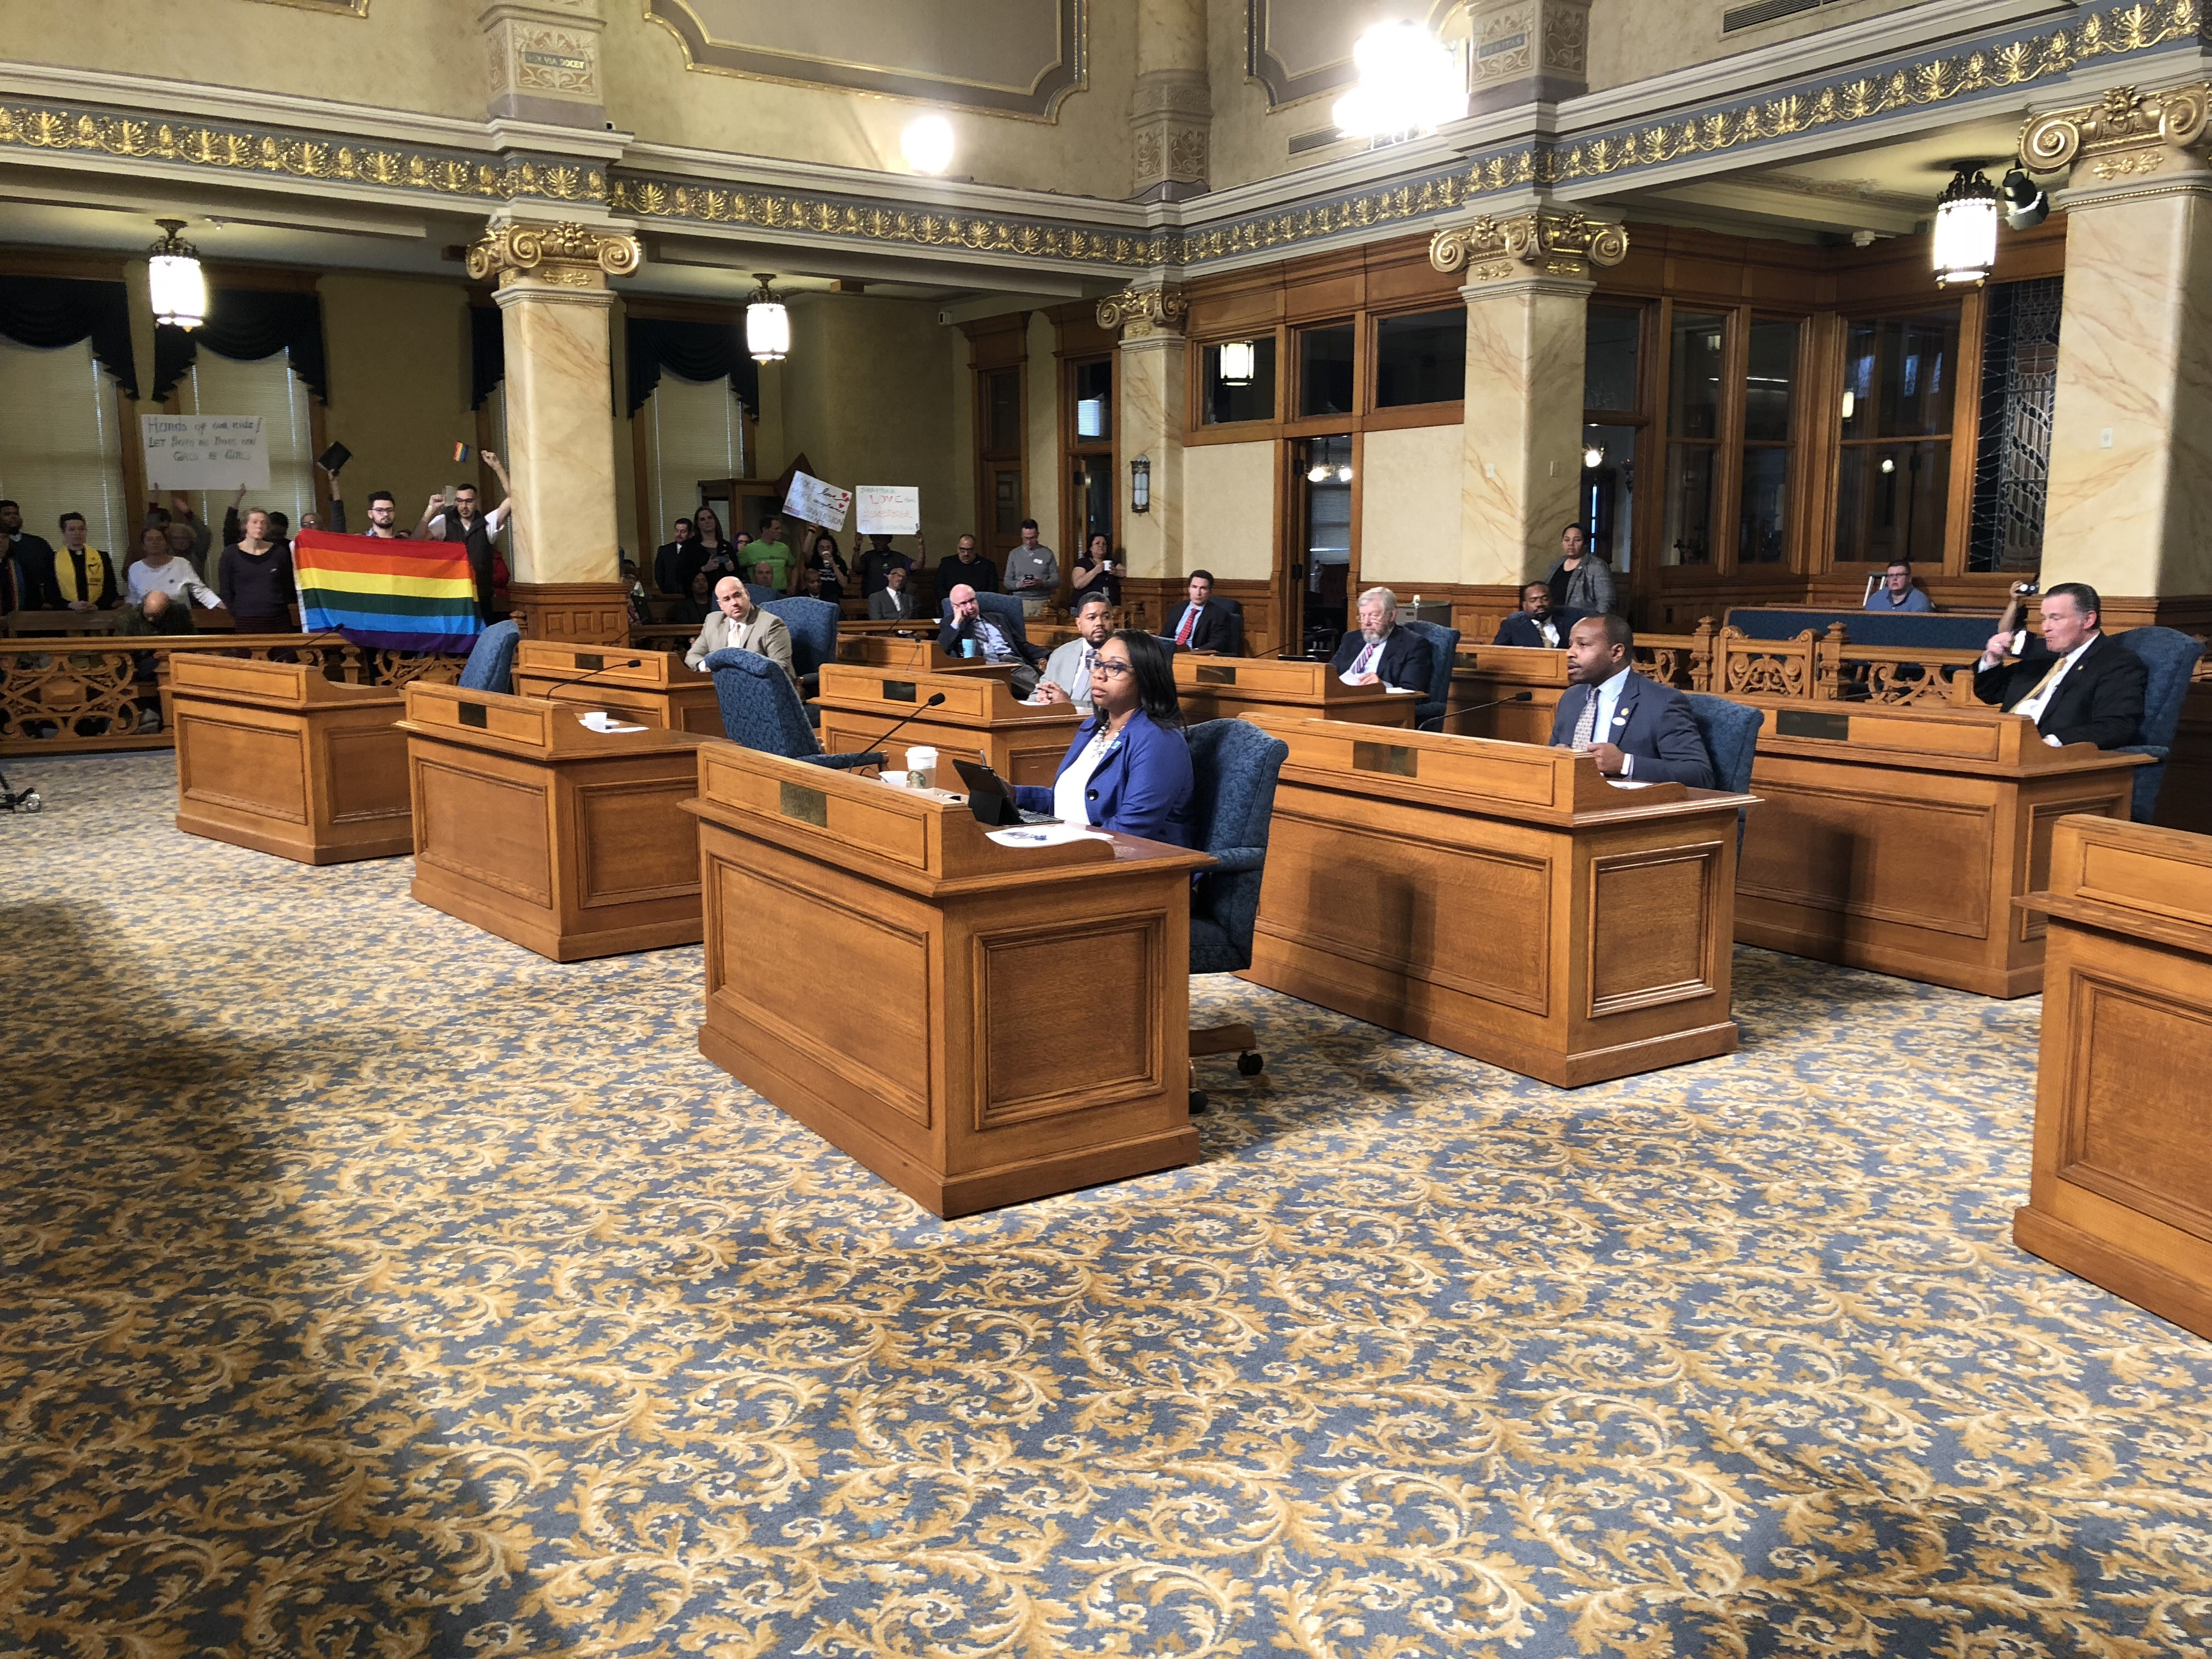 Ald. Cavalier Johnson (speaking from desk in second row) describes his conversion therapy ban. Photo by Jeramey Jannene.